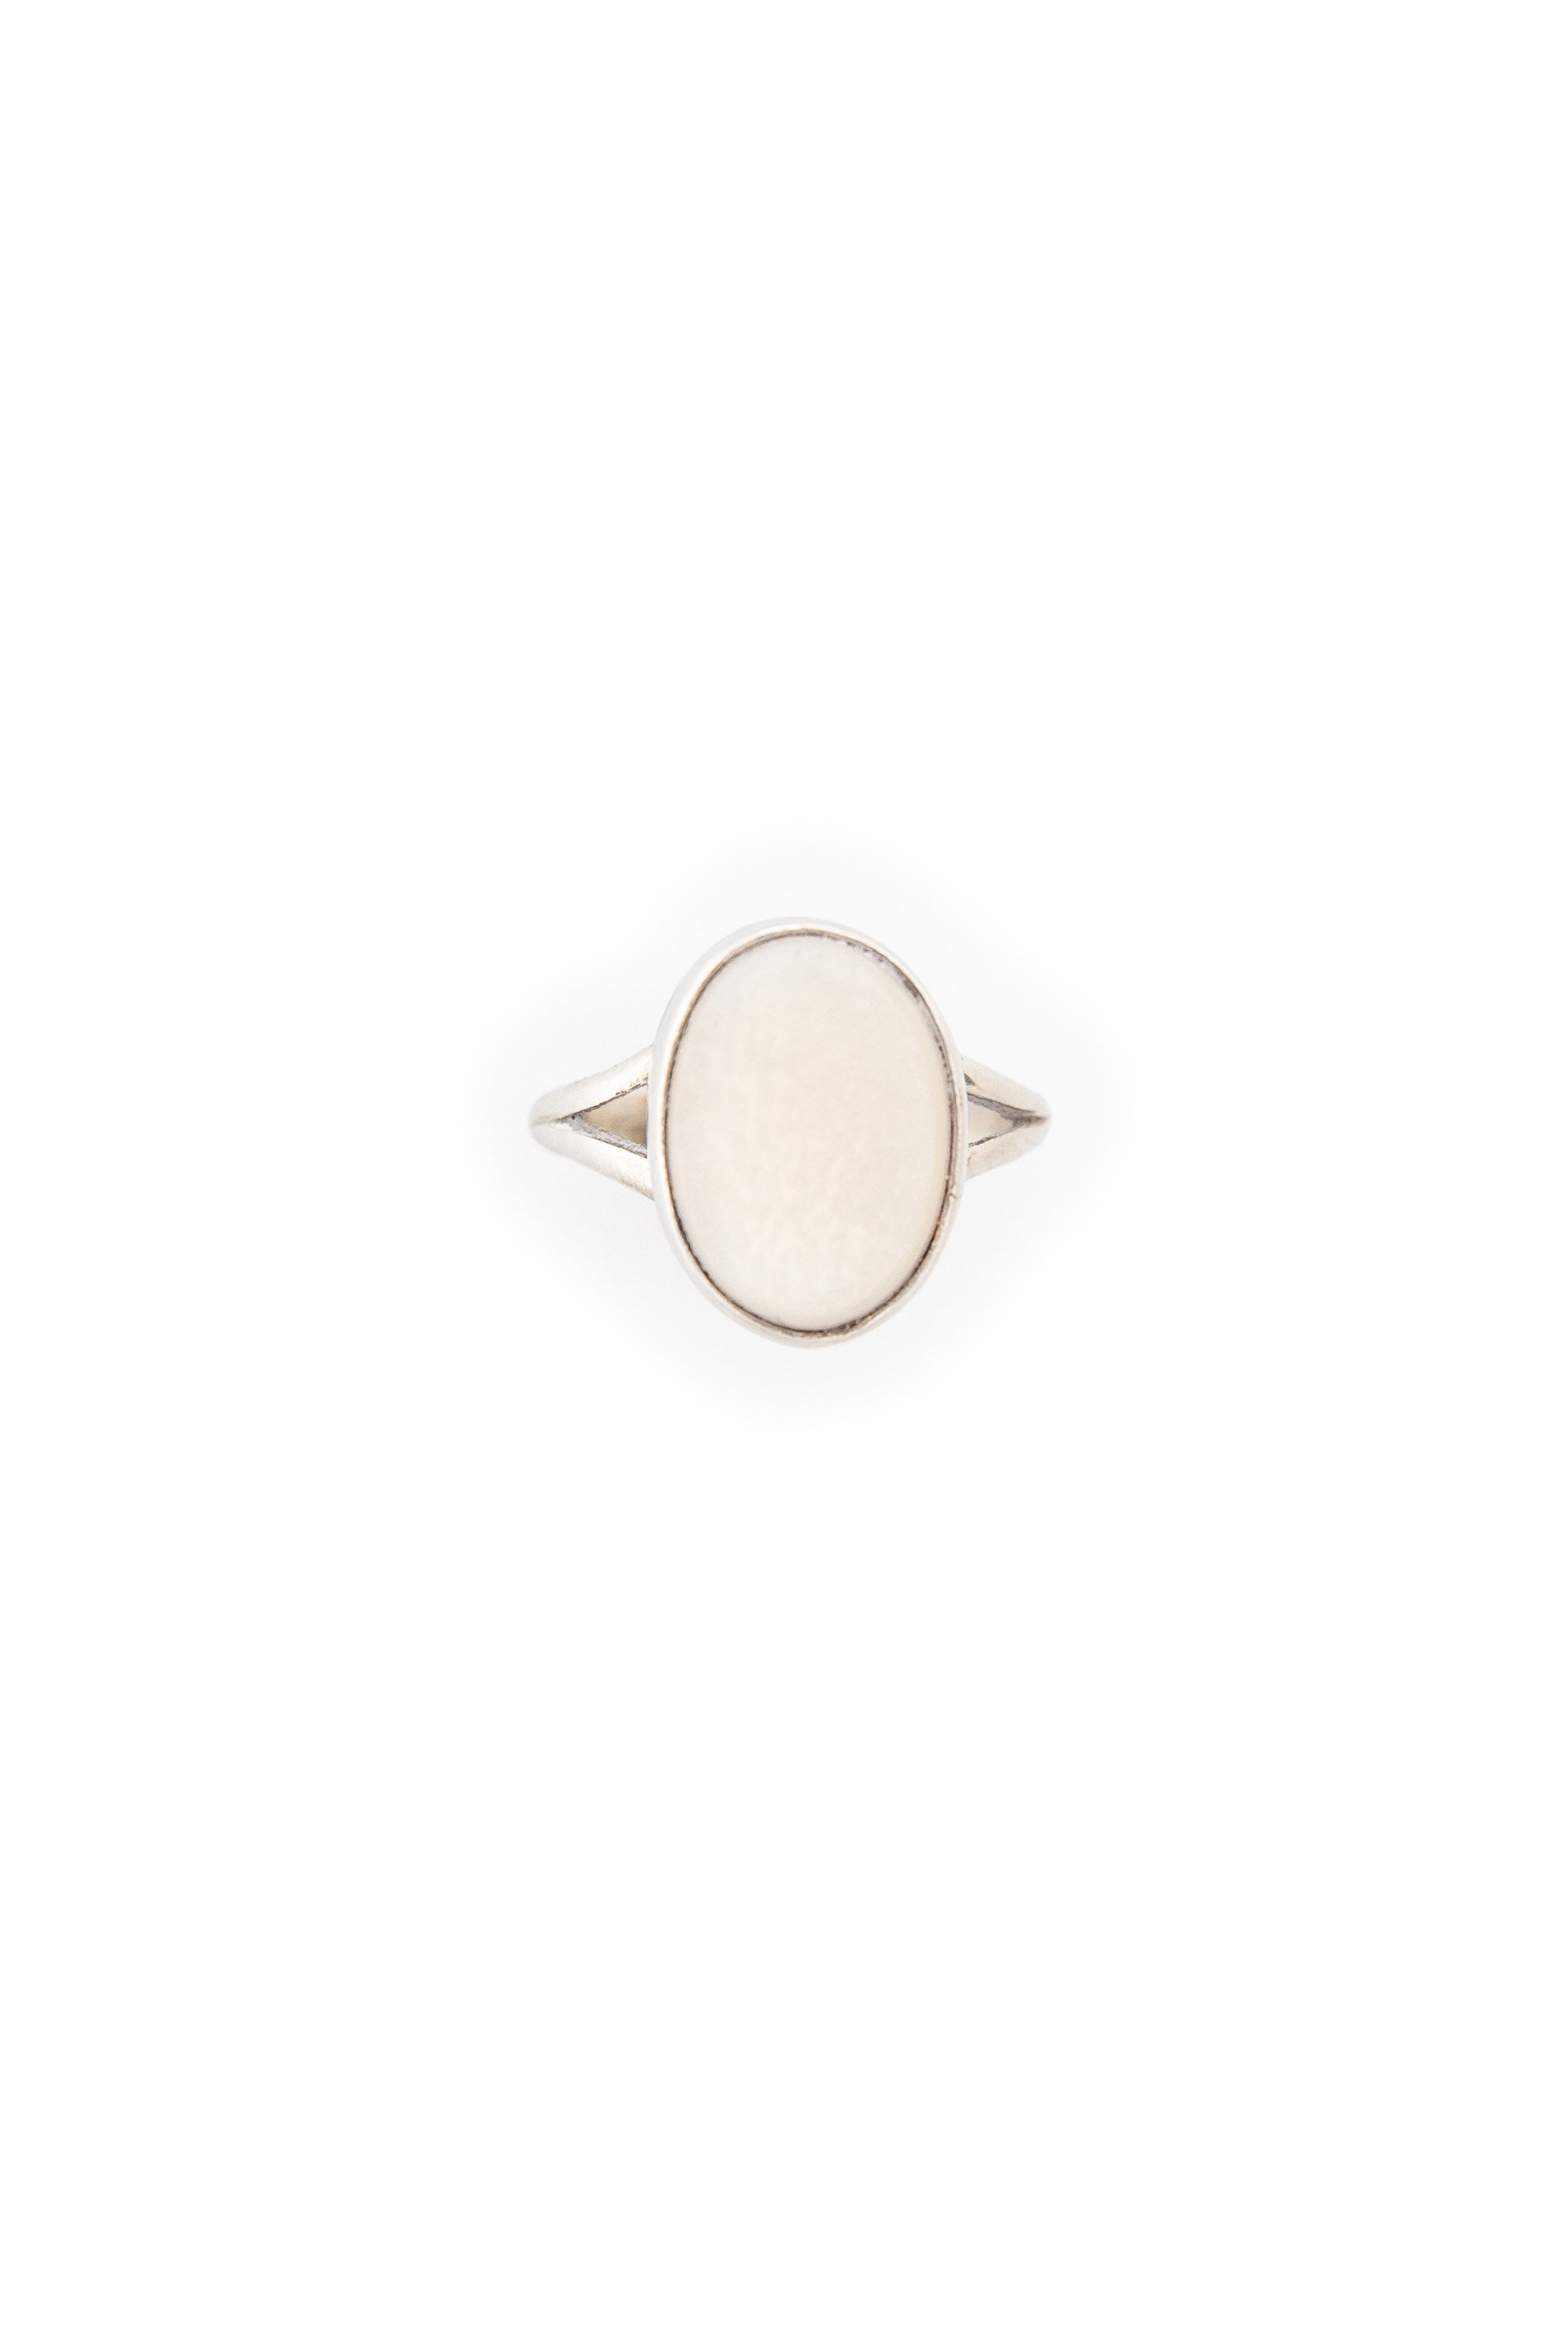 Ring, Mother of Pearl, Single Stone, Vintage, 532